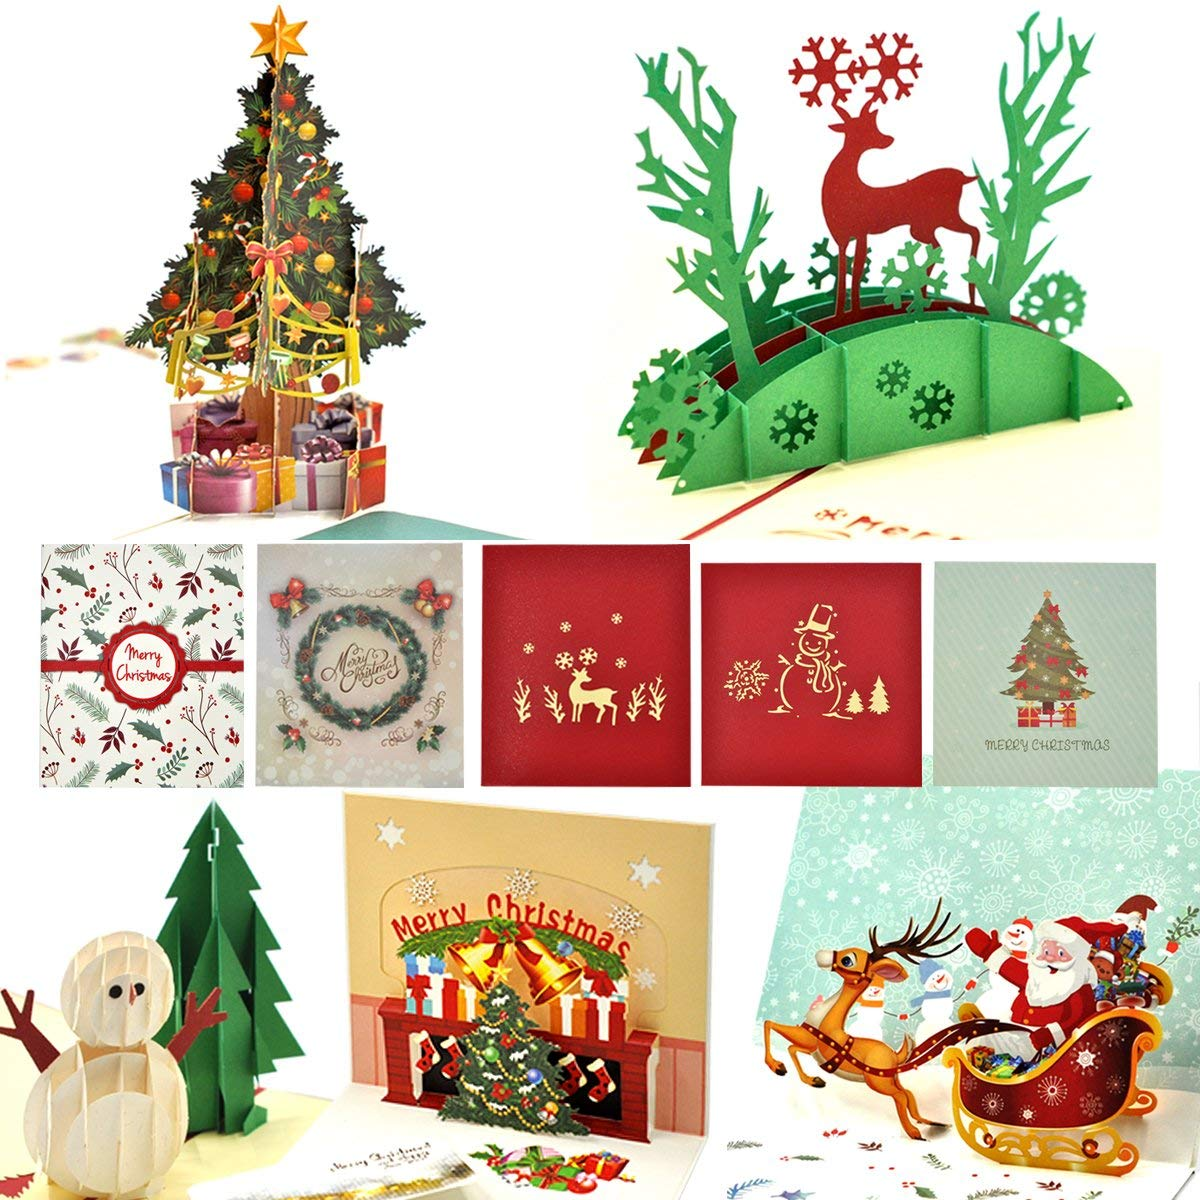 Christmas Cards, eZAKKA 3D Christmas Cards Pop Up Holiday Greeting Gifts Cards with Envelopes for Xmas Merry Christmas New Year, 5-Pack